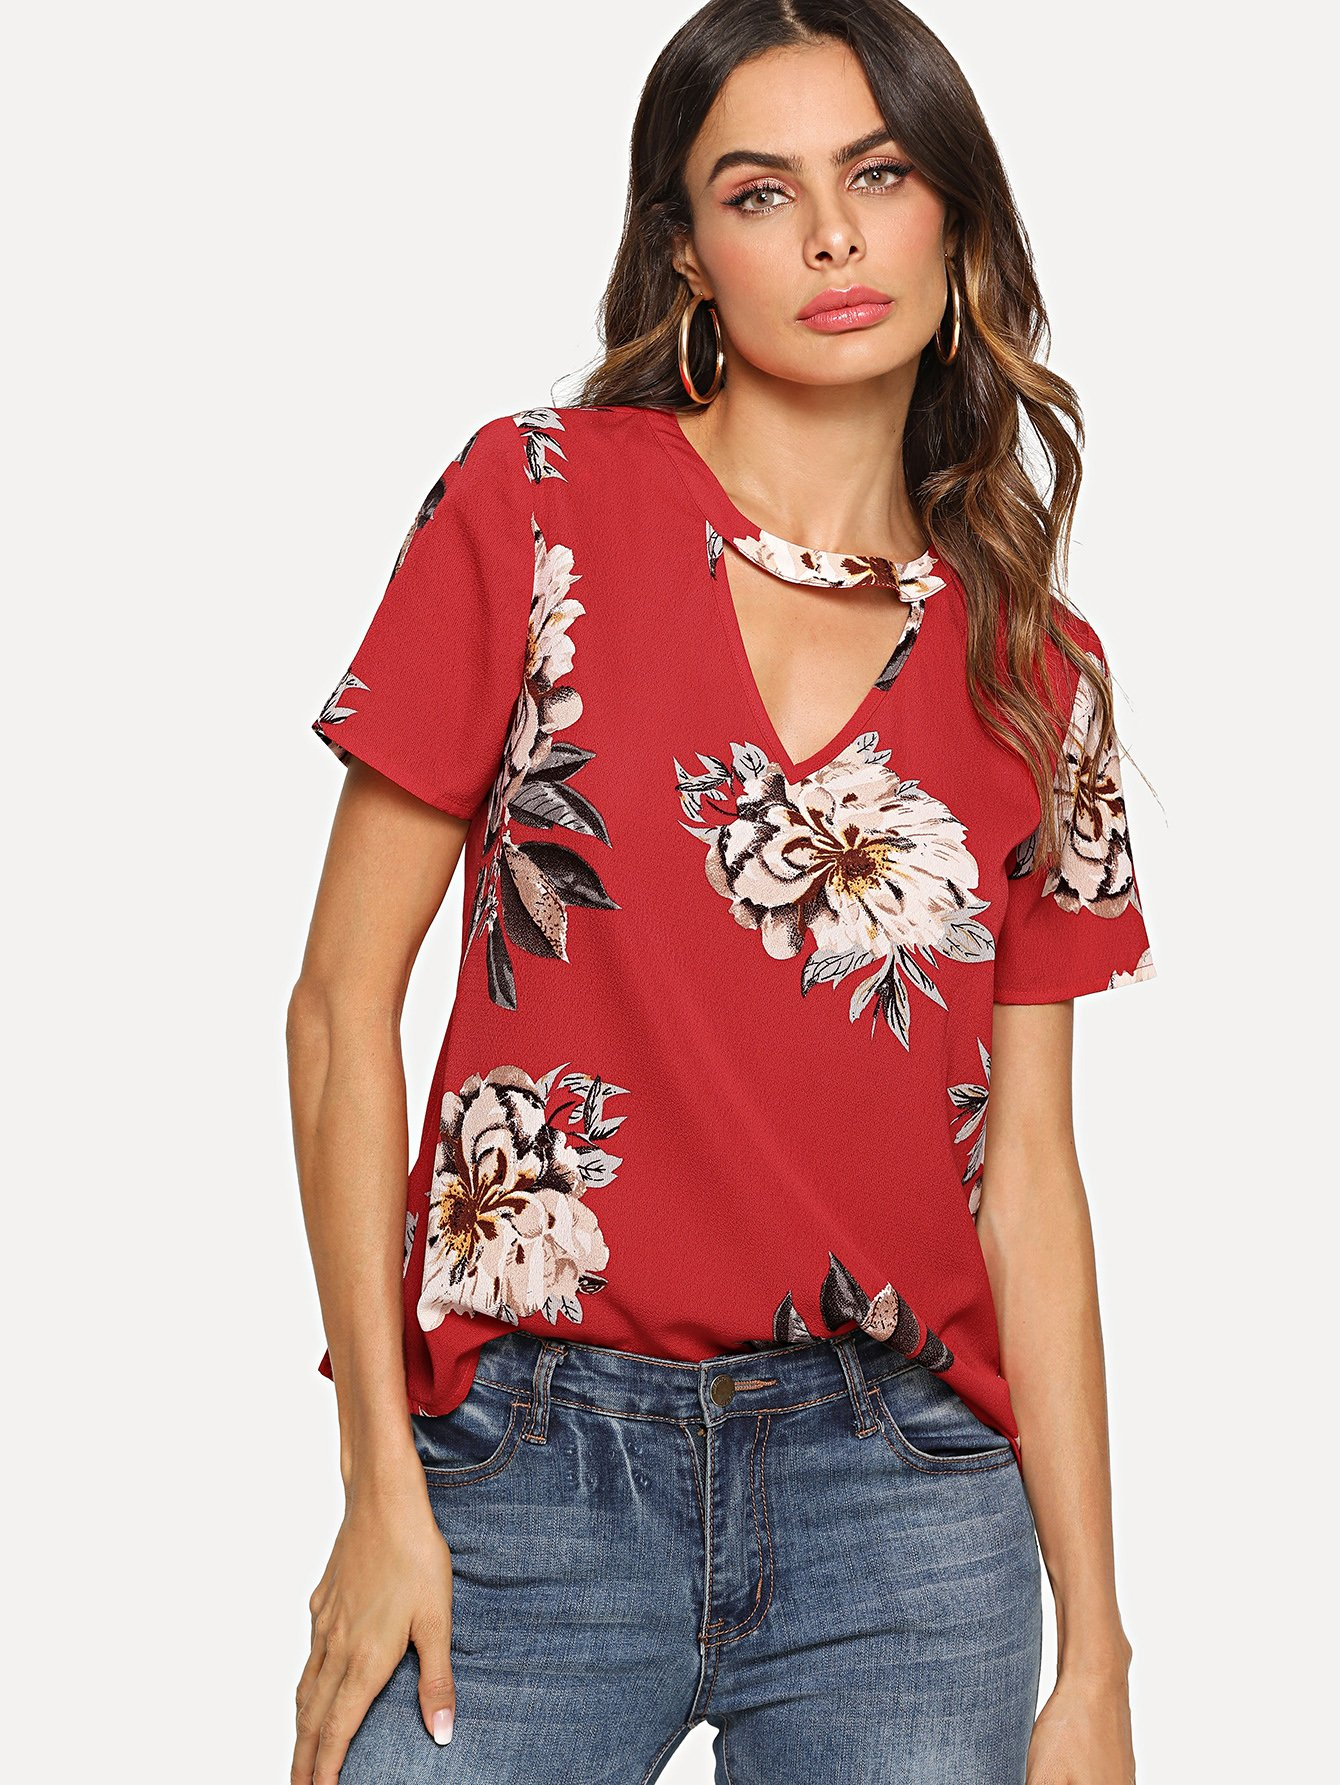 V Cut Neck Keyhole Back Floral Top cut and sew keyhole back top